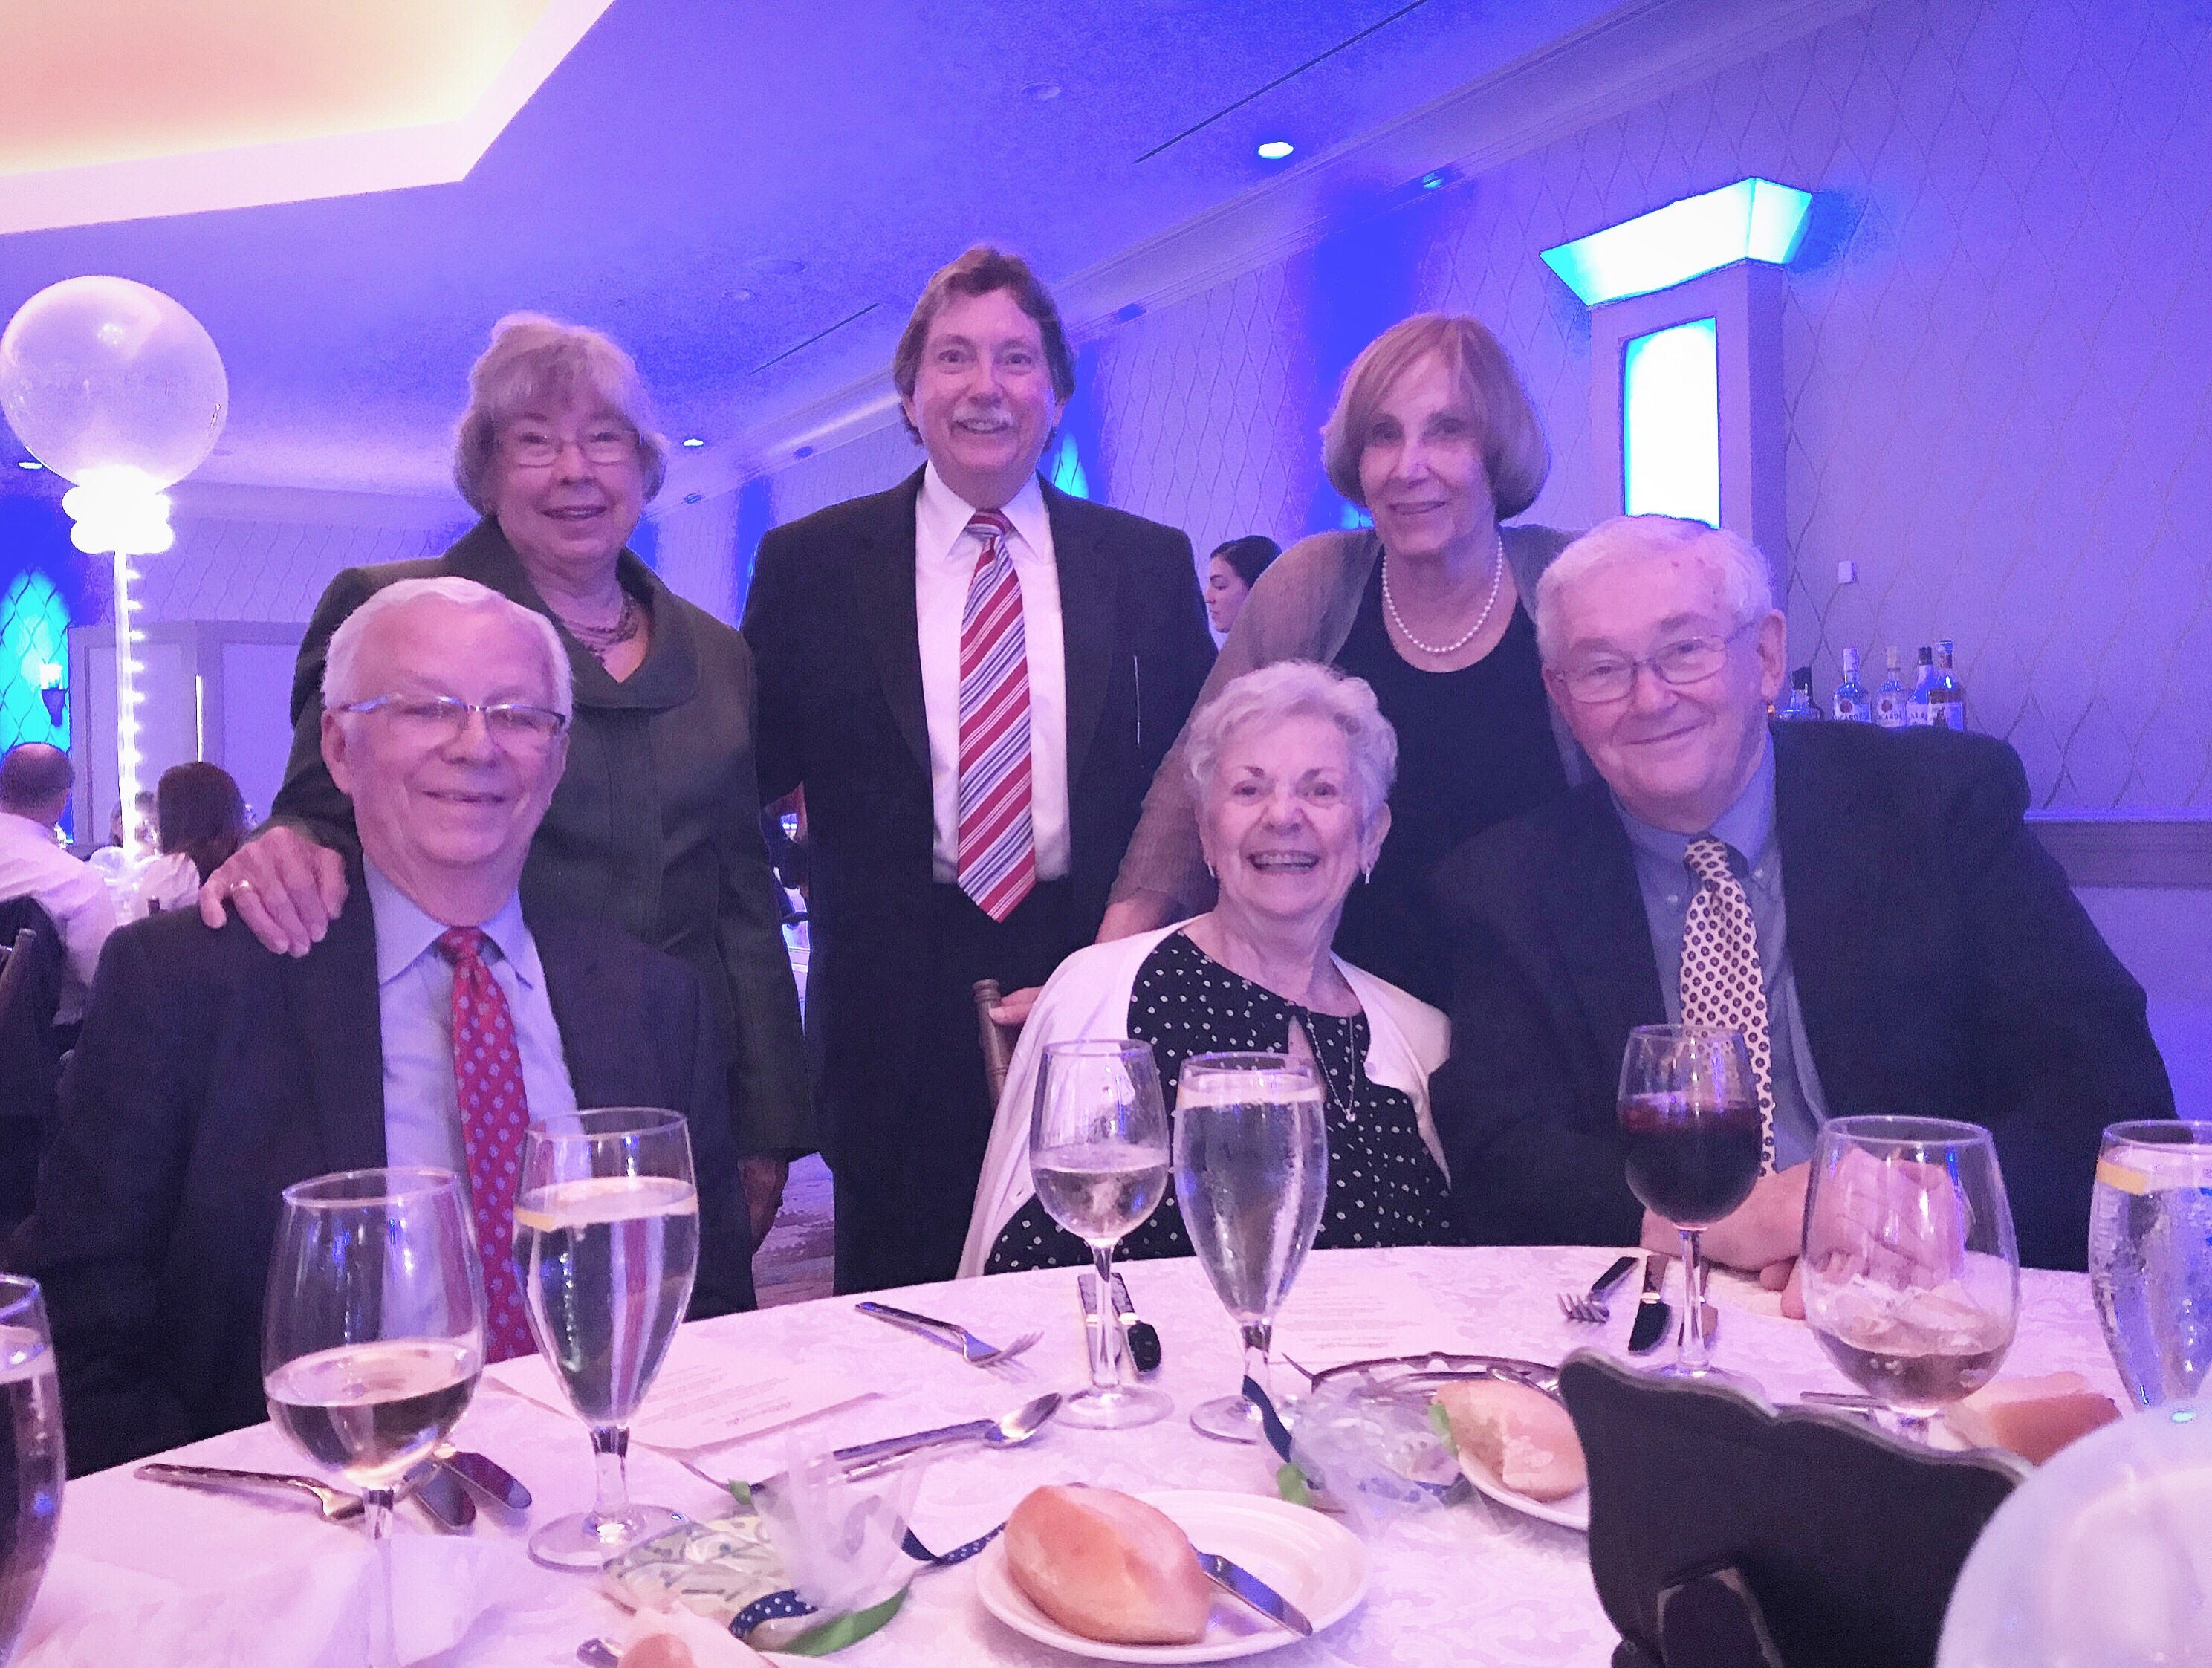 Alternatives, Inc. celebrated the agency's 40th anniversary at the 2019 Dignity Gala, hosted by The Marigold in the Somerset section of Franklin Township on Saturday, April 13. The event raised more than $70,000 to support Alternatives' many service initiatives, which include support coordination, case management, supportive counseling, life skills education, a day program, employment evaluation, training and placement, trial work experience, supported employment, and transition services, providing services to more than 600 individuals in nine New Jersey counties. Celebrants pictured (from left, standing)are Dell Guynes, Alternatives' Trustee Richard Sample, and Gwyneth Sample; and (from left, seated)former Board of Trustees Chairman Sam Guynes, Barbara Westlein and Trustee Joseph Westlein. Sample,Guynes and Westlein all joined the Alternatives' Board during their tenure at Johnson & Johnson. To see more Dignity Gala photos, visit Alternatives' website at www.alternativesinc.org.